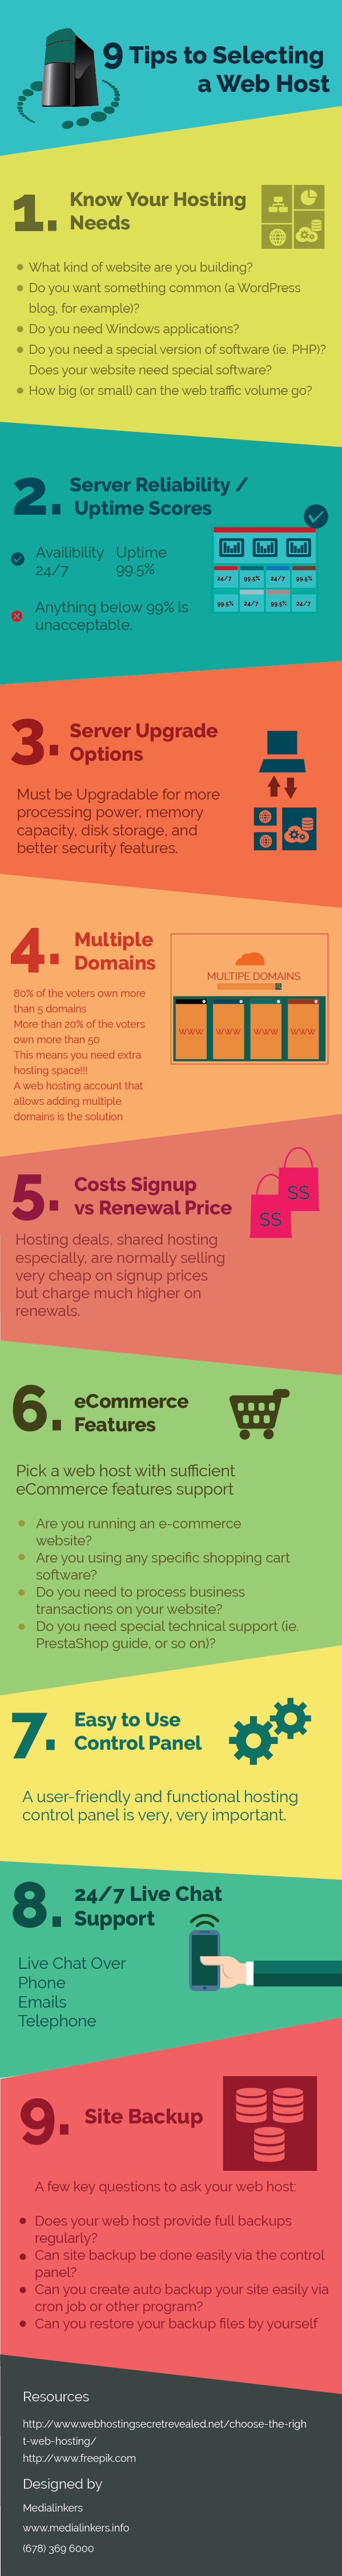 11++ How much to host a website viral